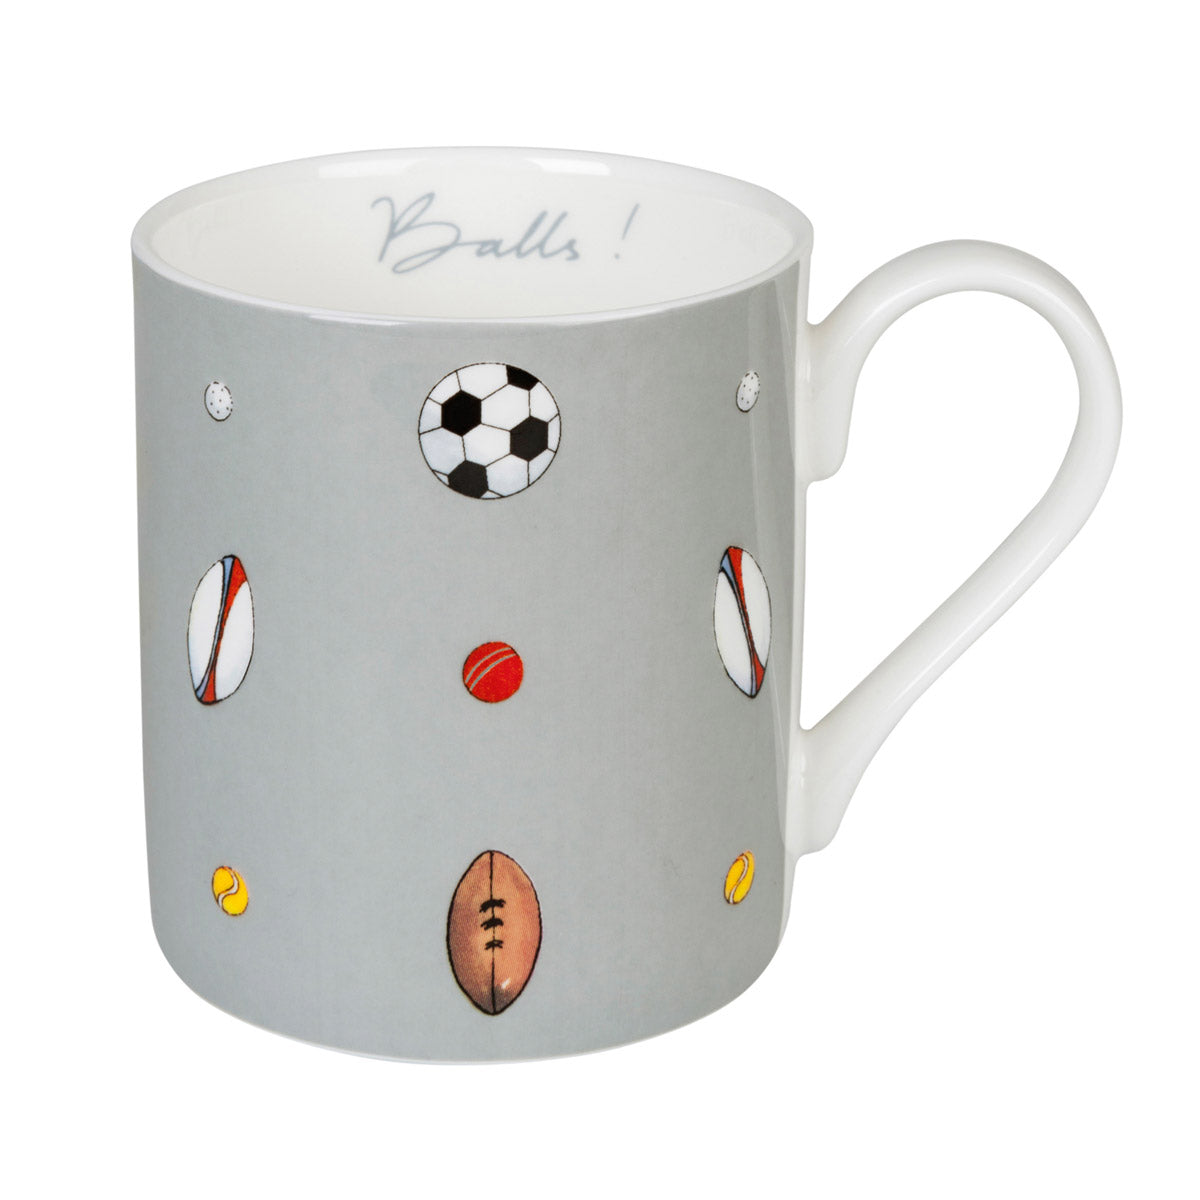 Balls Mug - Coloured